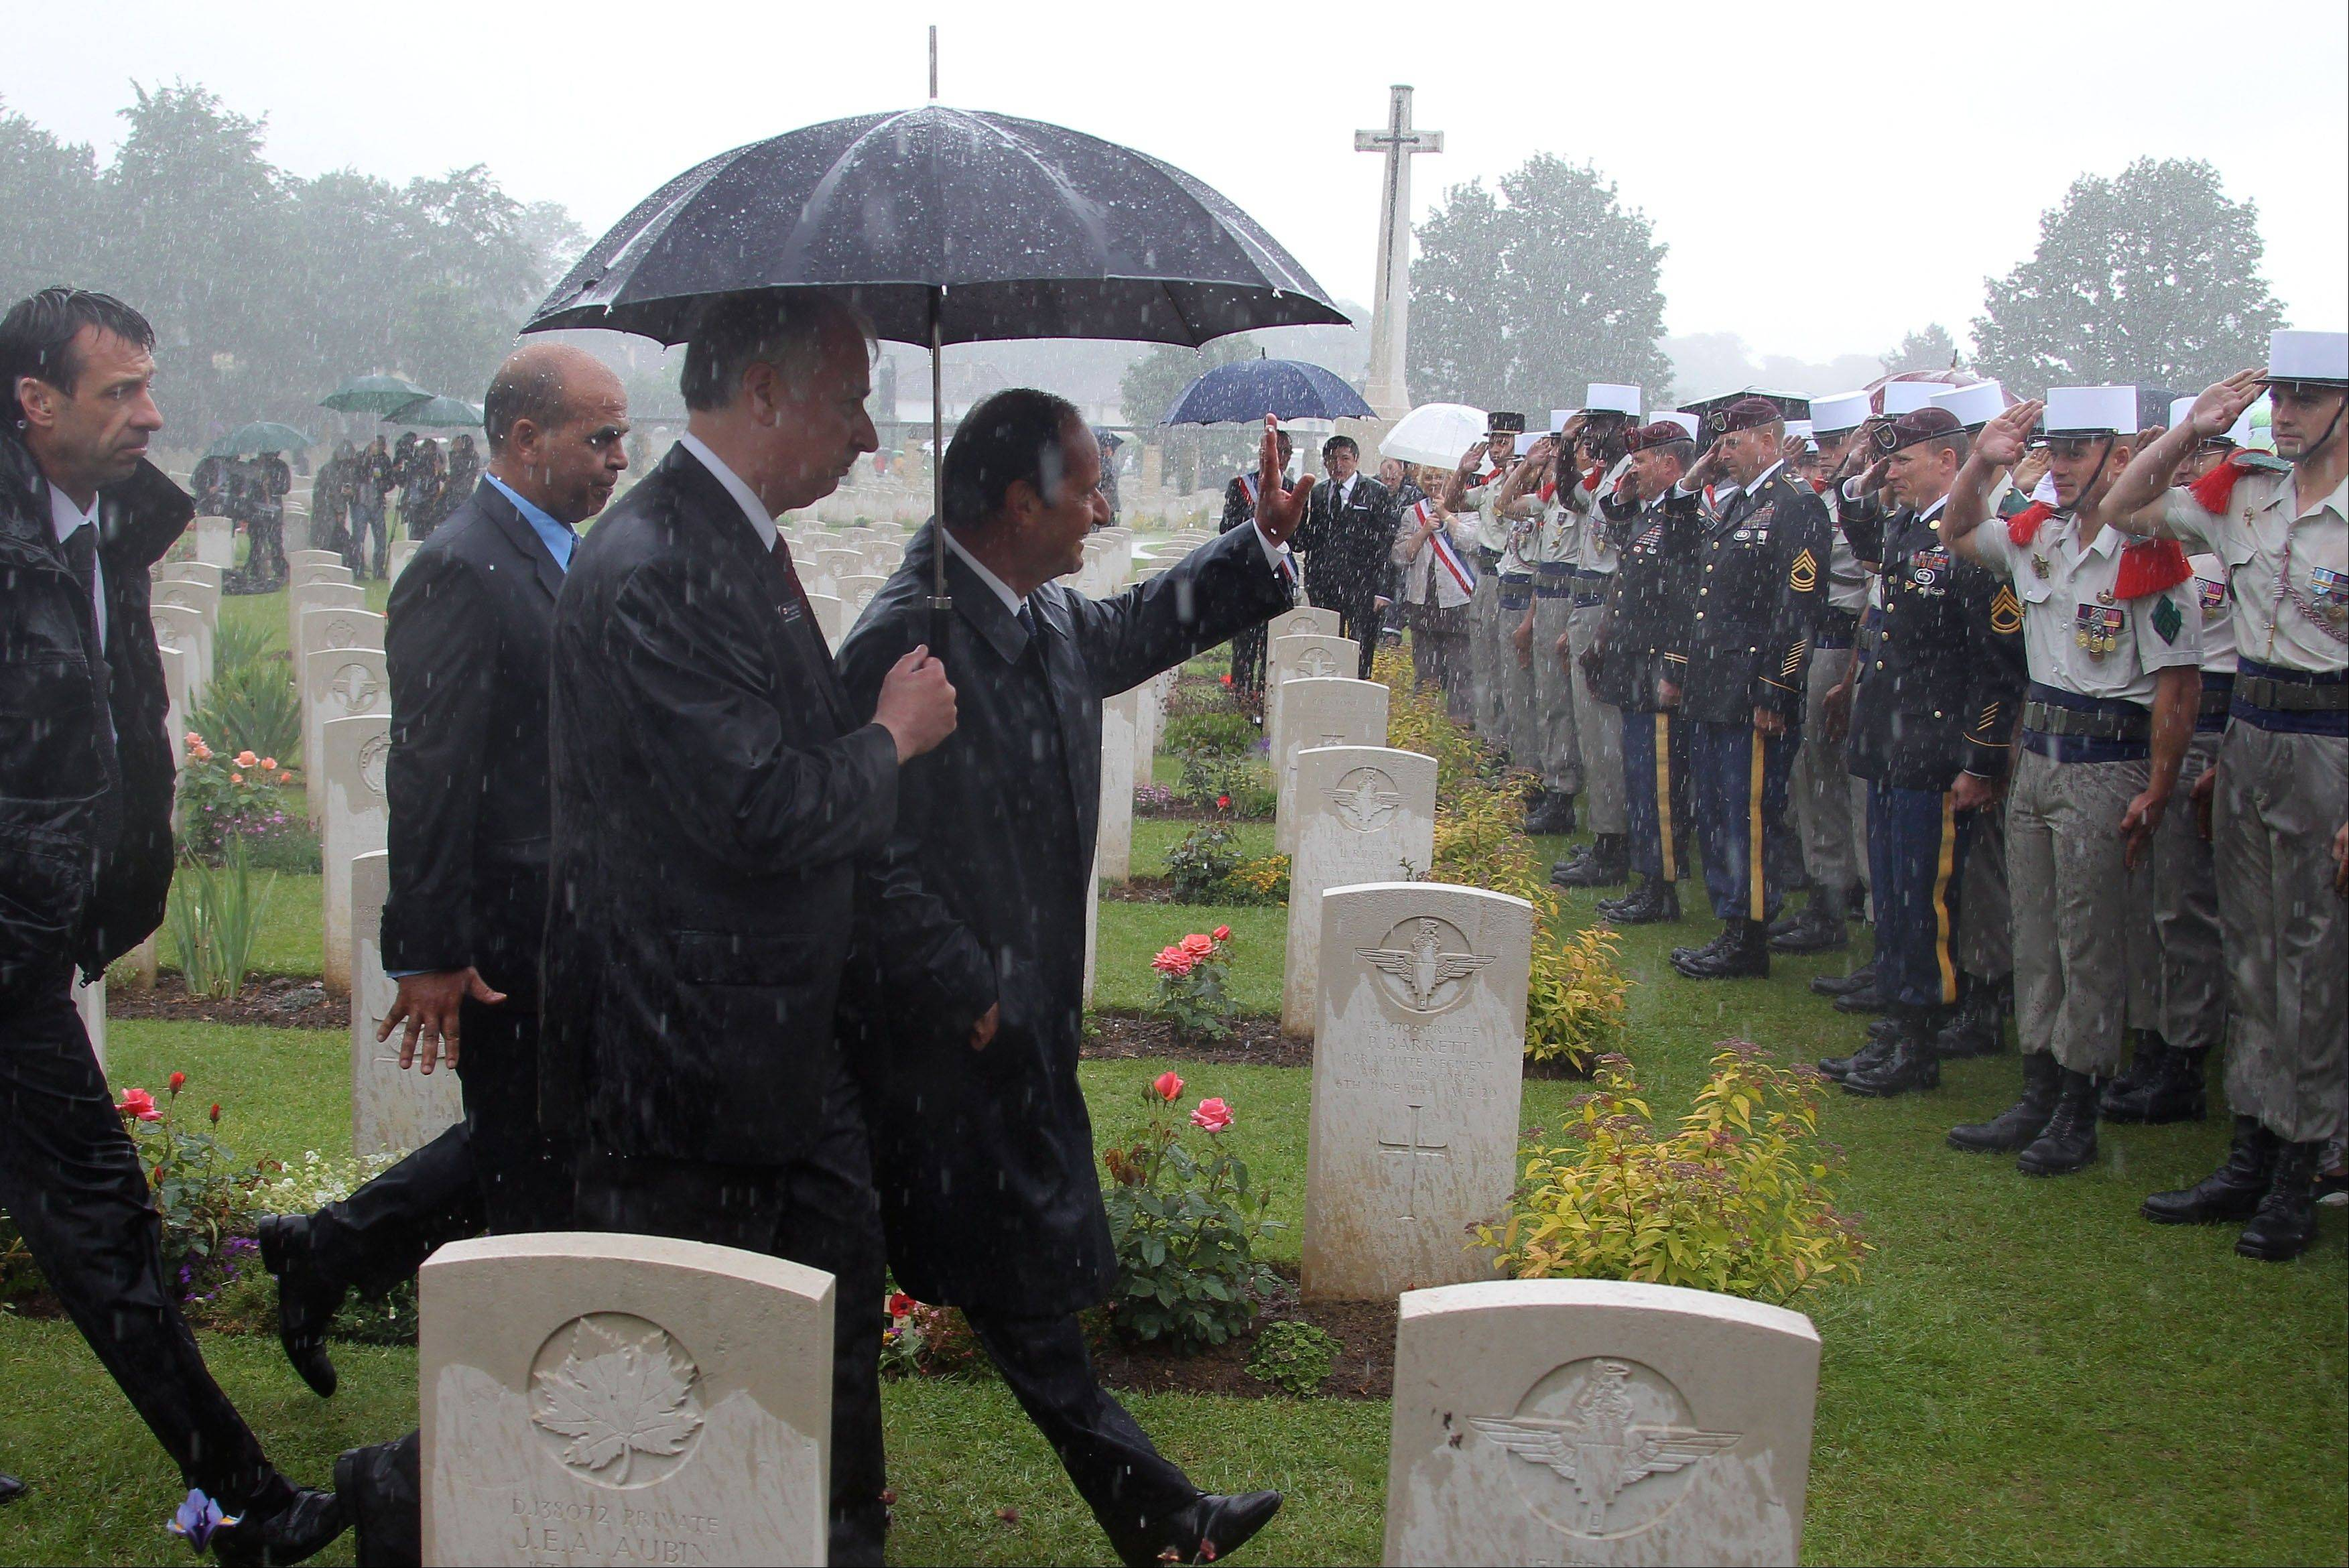 French President Francois Hollande waves to soldiers at the end of a ceremony commemorating the 68th anniversary of the D-Day invasion of France began in 1944, in the British war cemetery of Ranville, western France, Wednesday, June 6, 2012.